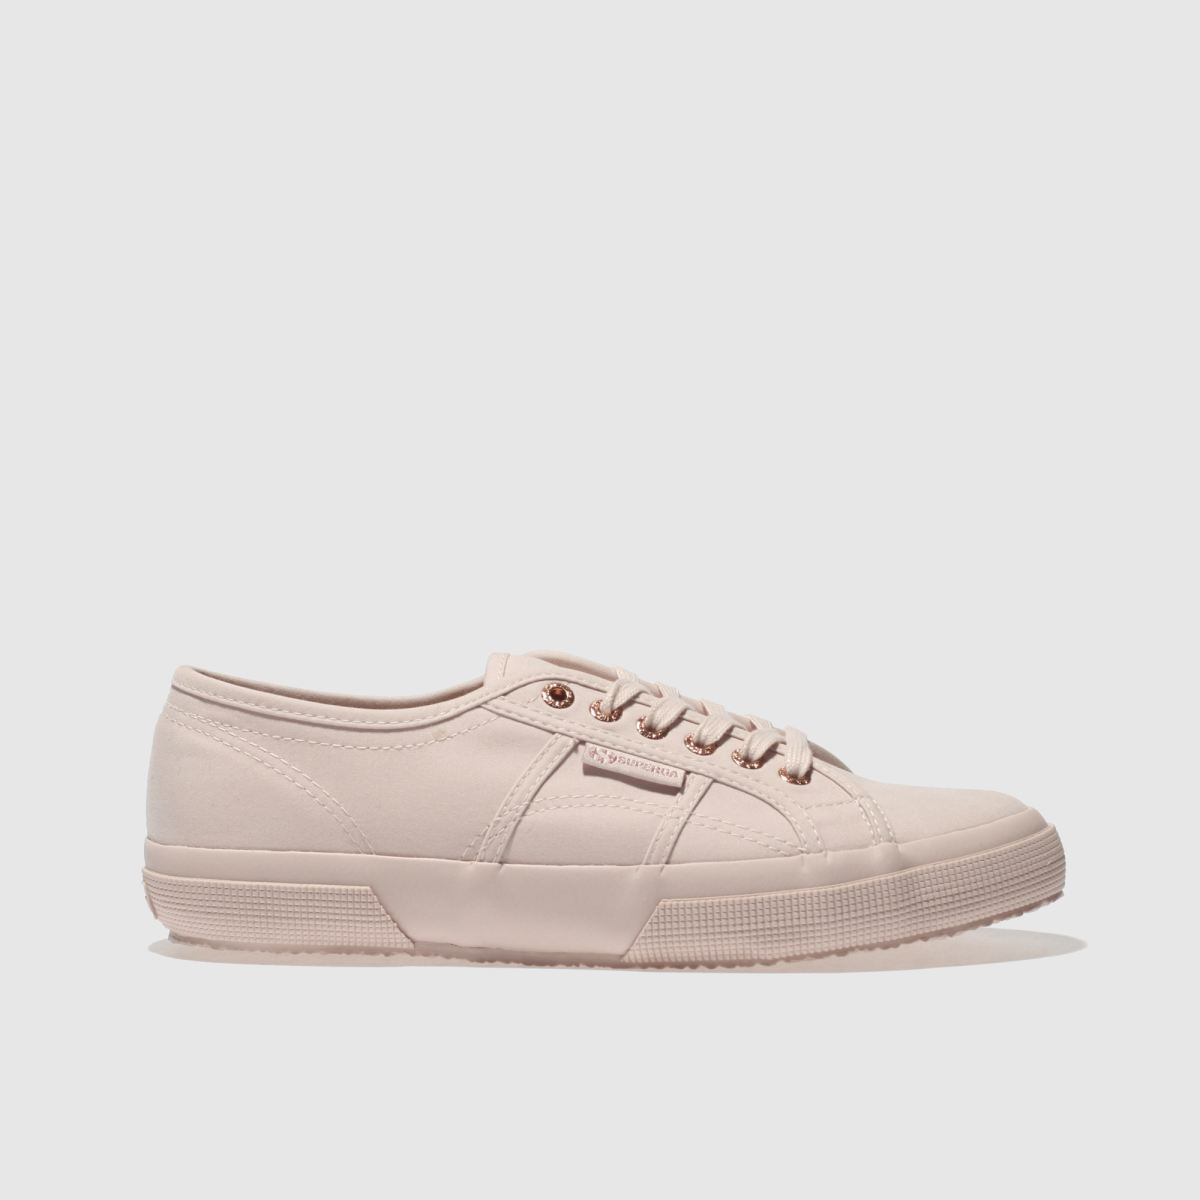 Superga Pale Pink 2750 Canvas Trainers